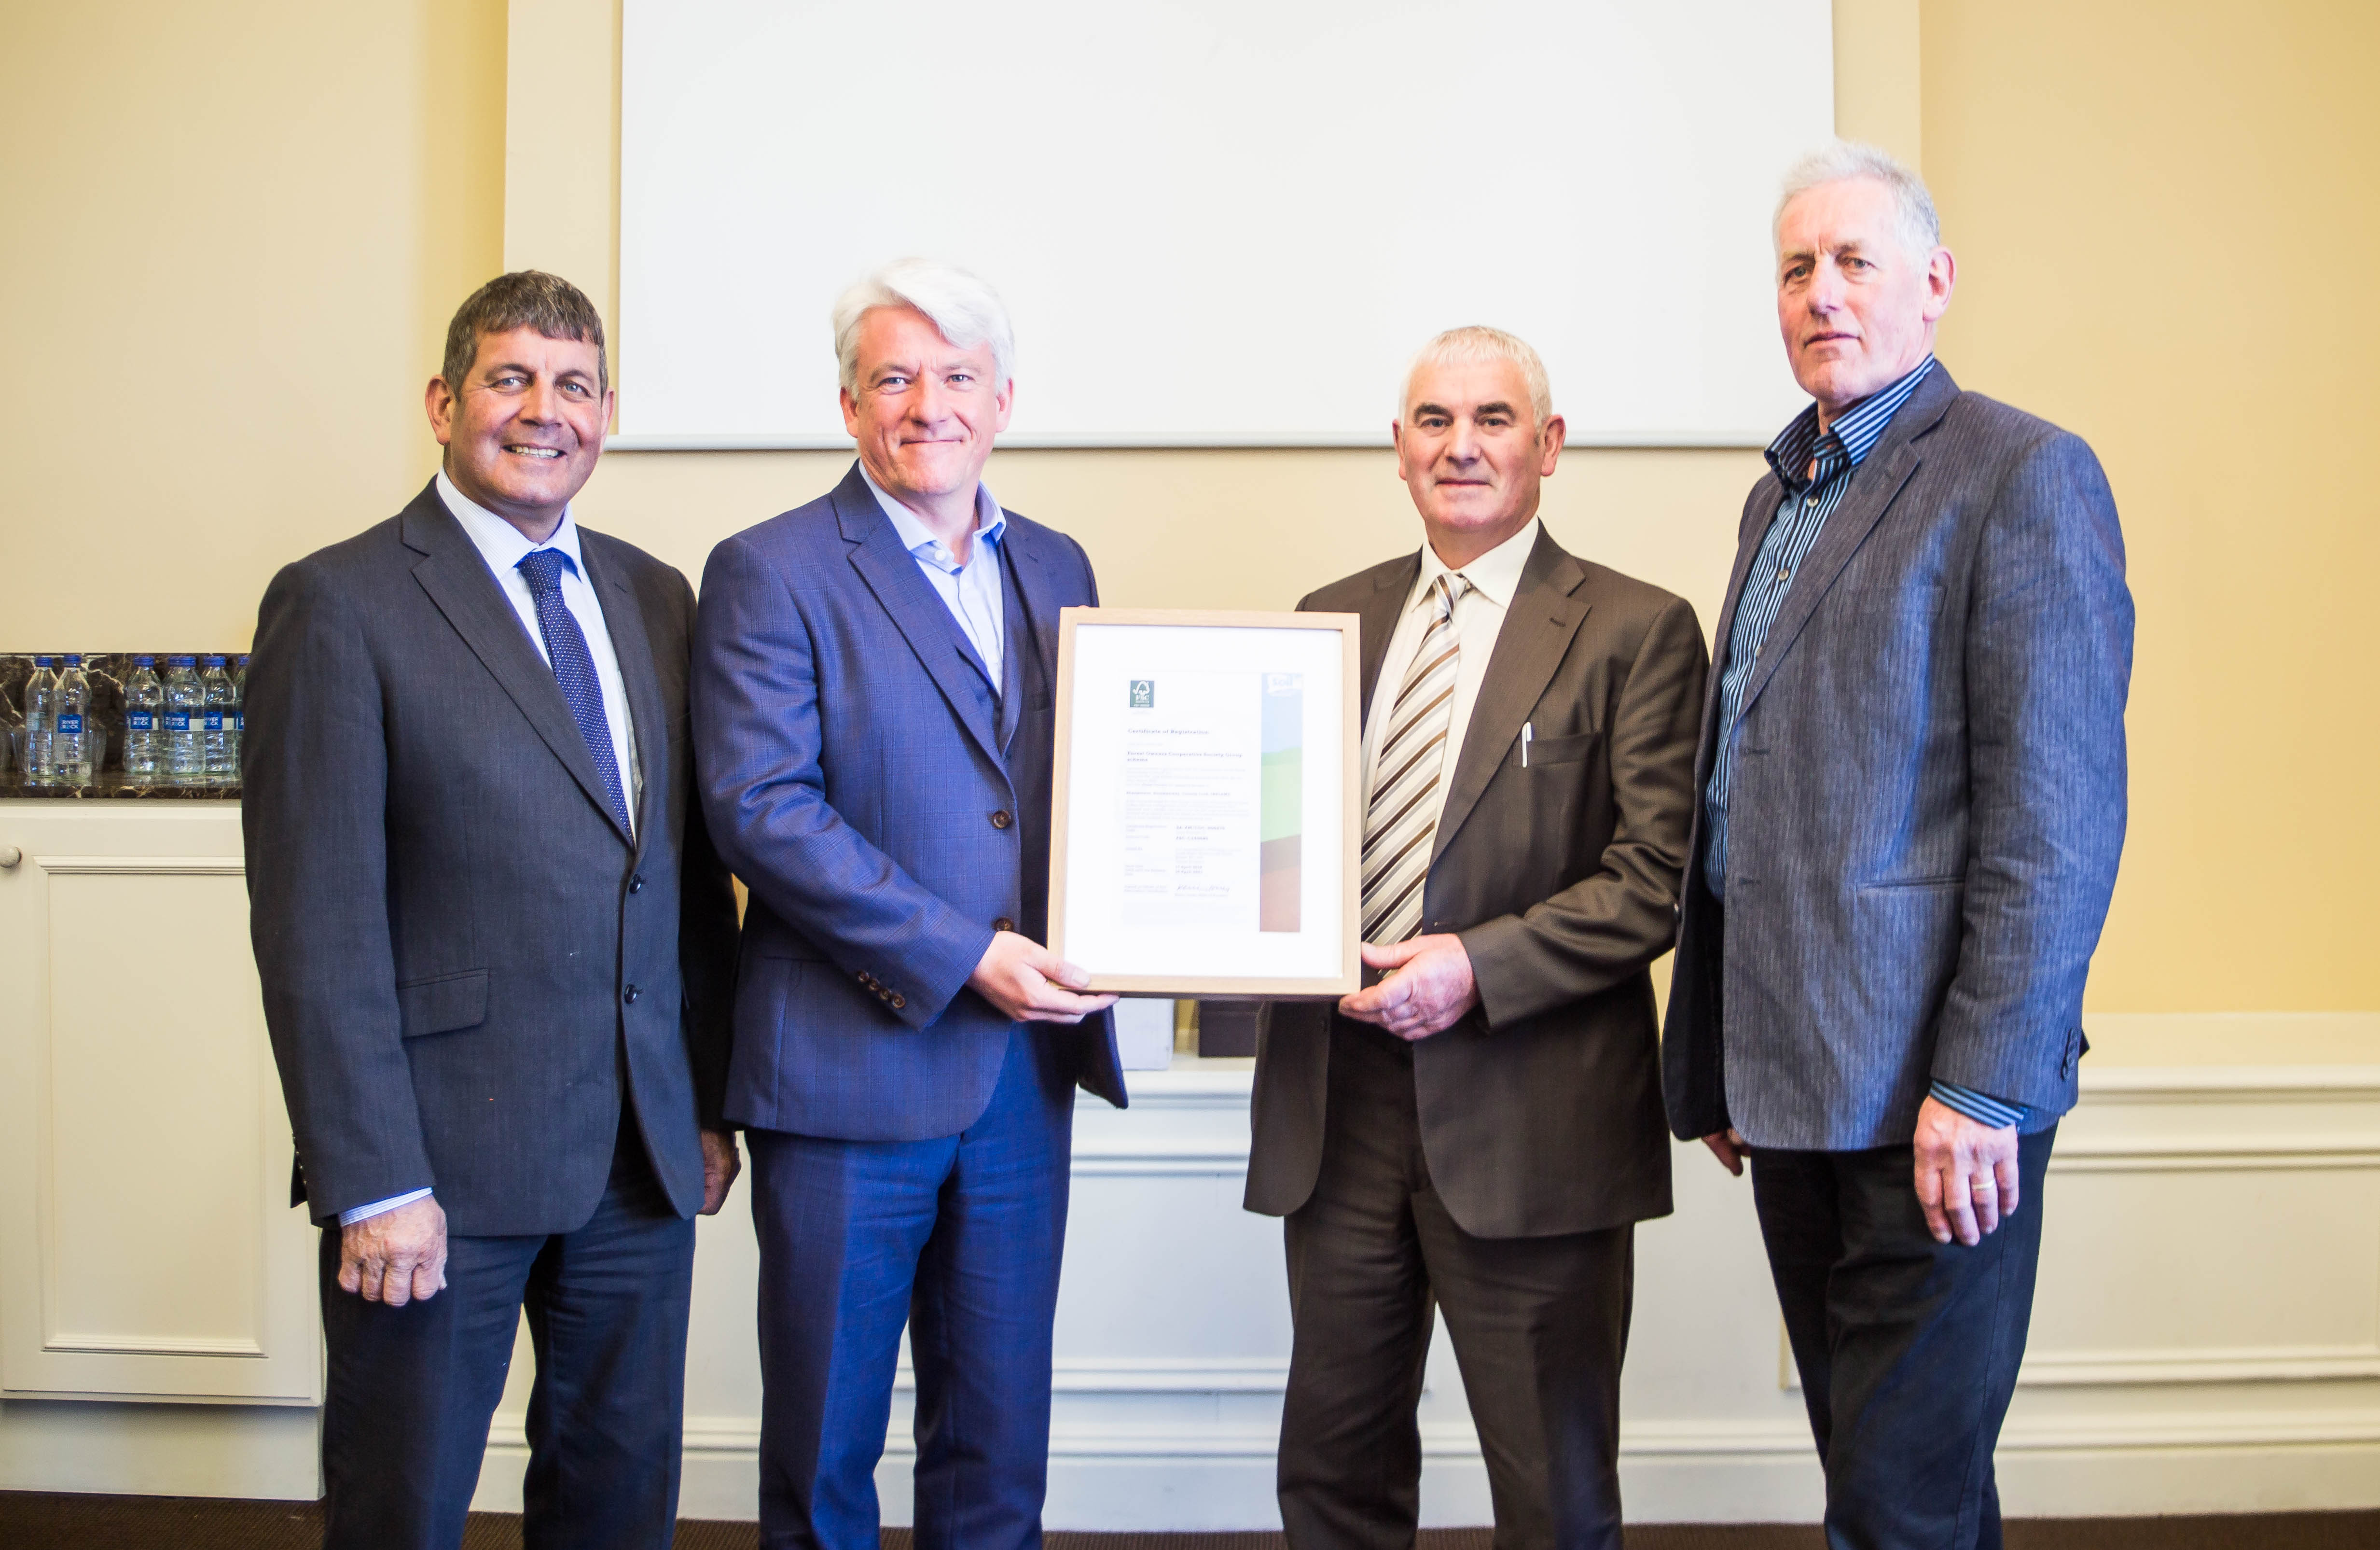 Presentation of Group Certificate to FOCS by Andy Grundy of Soil Association Association in the presence of Minister of State, Andrew Doyle, TD